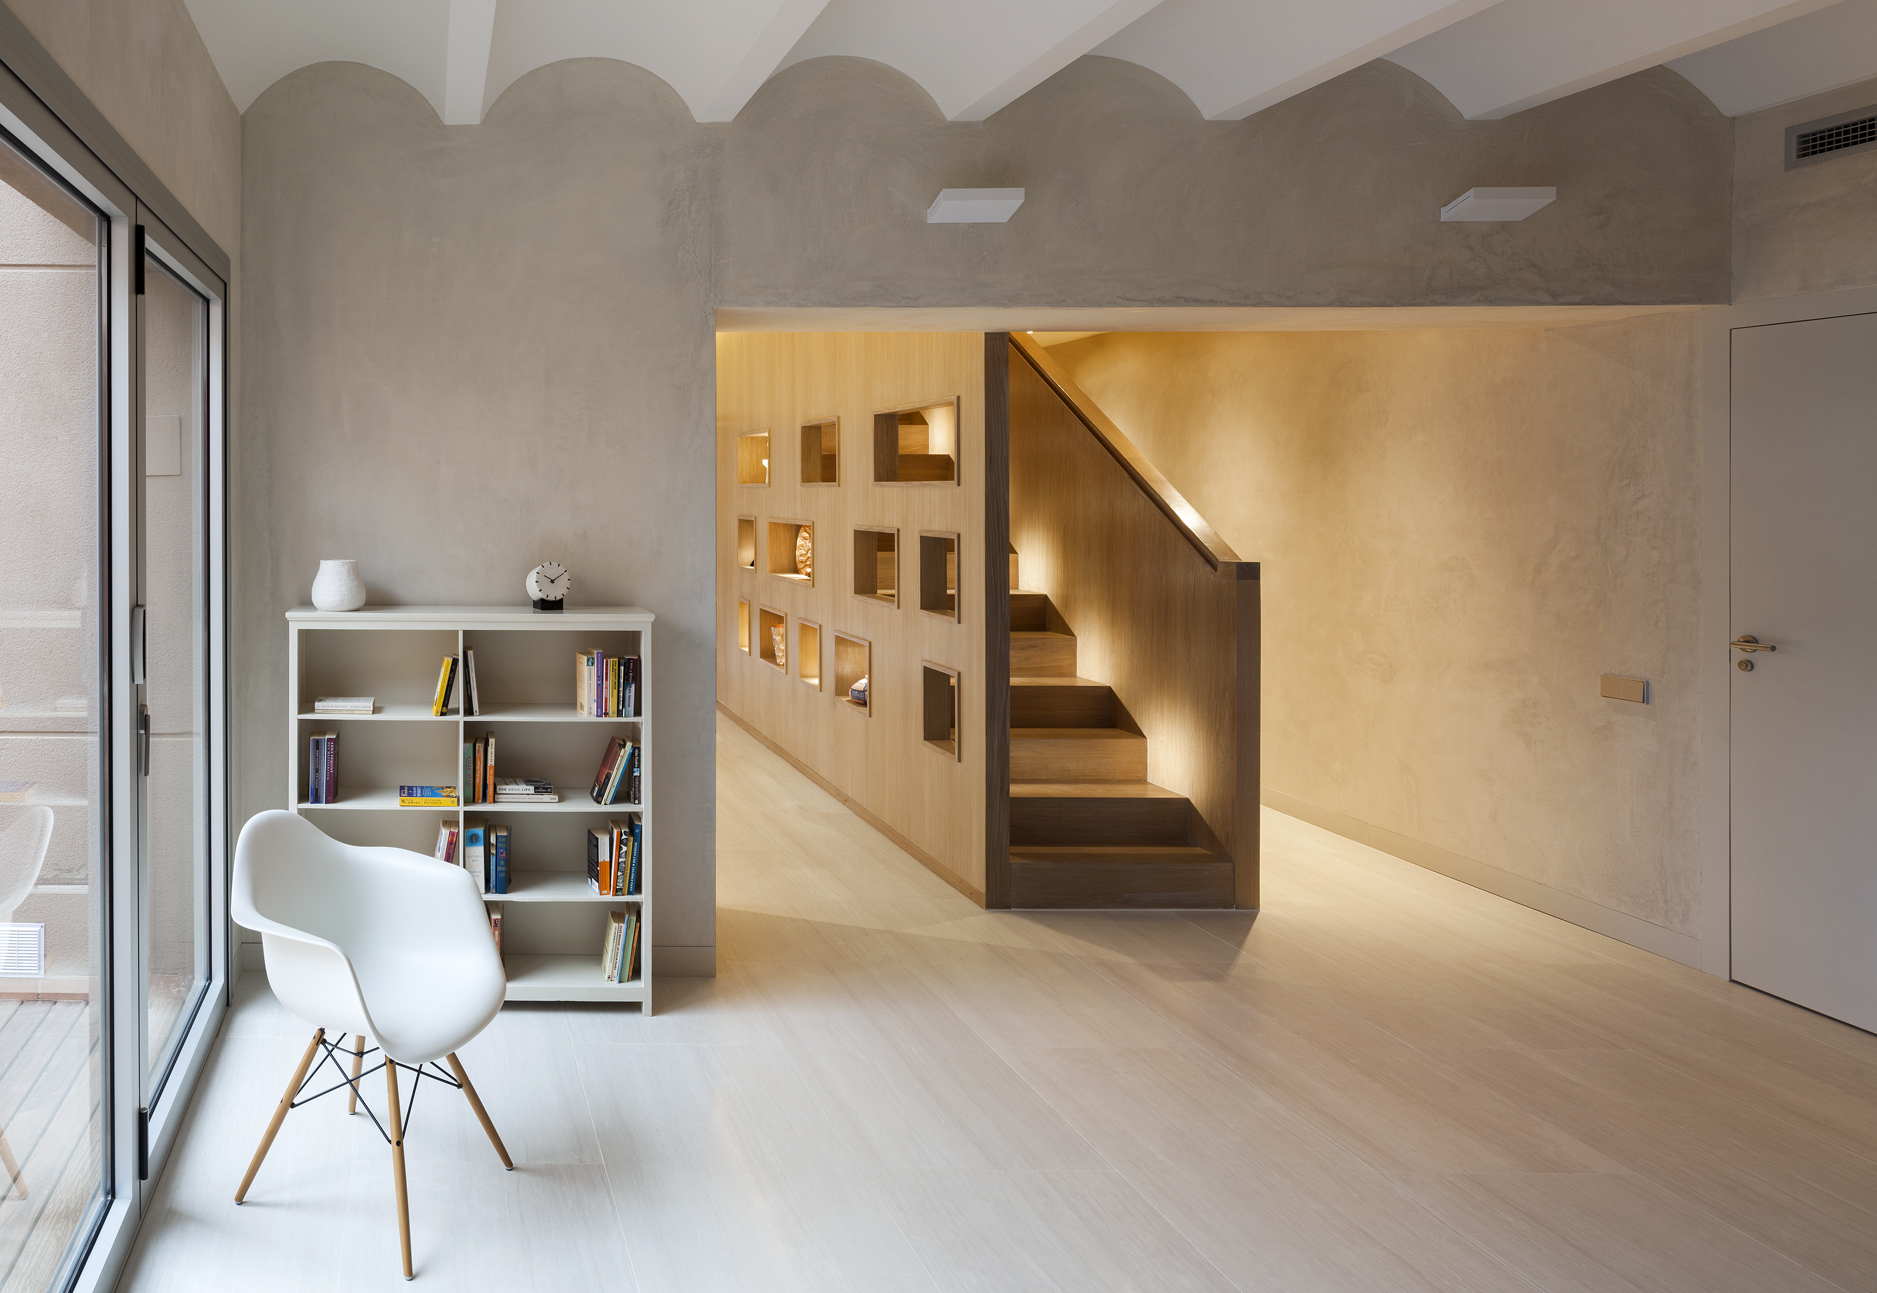 Duplex in Gracia  Zest Architecture  ArchDaily